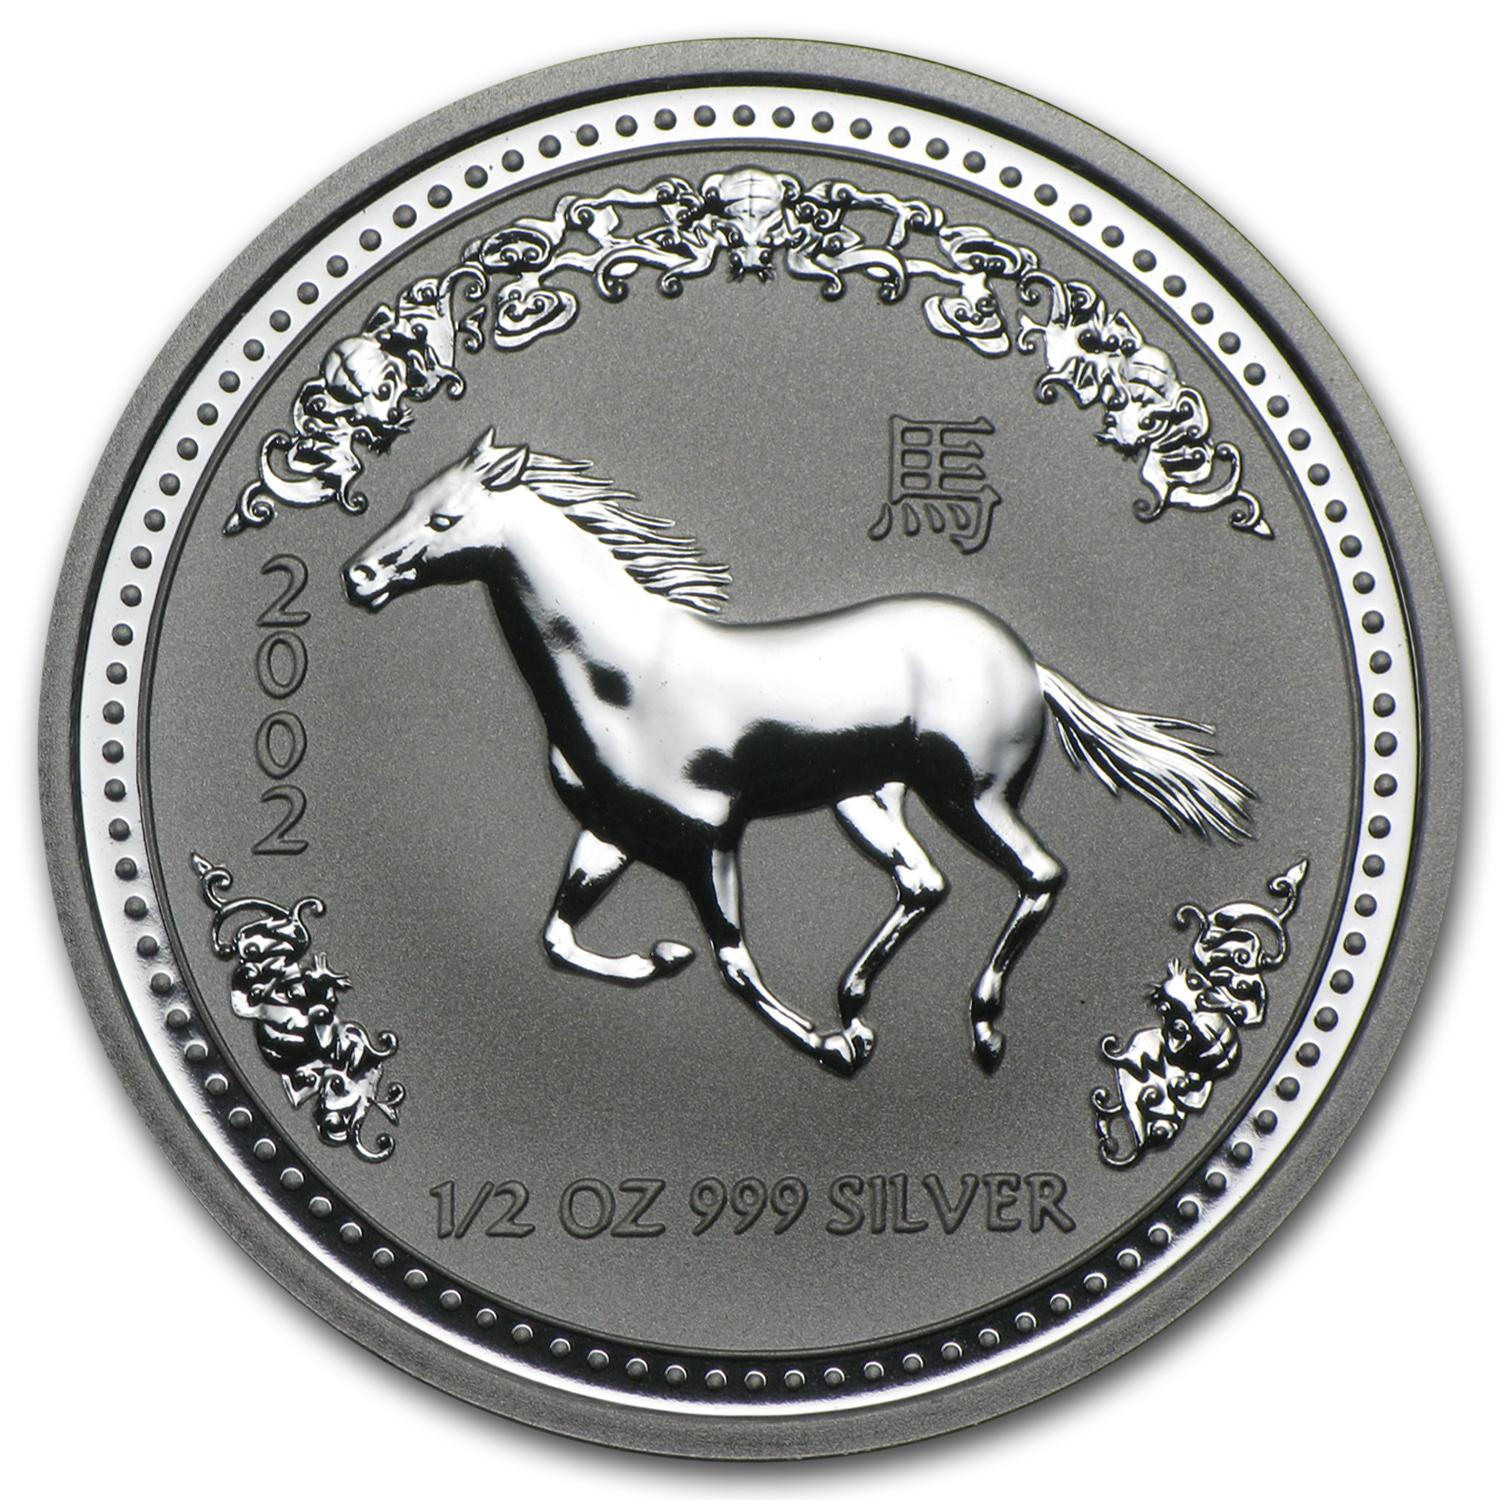 2002 Australia 1/2 oz Silver Year of the Horse BU